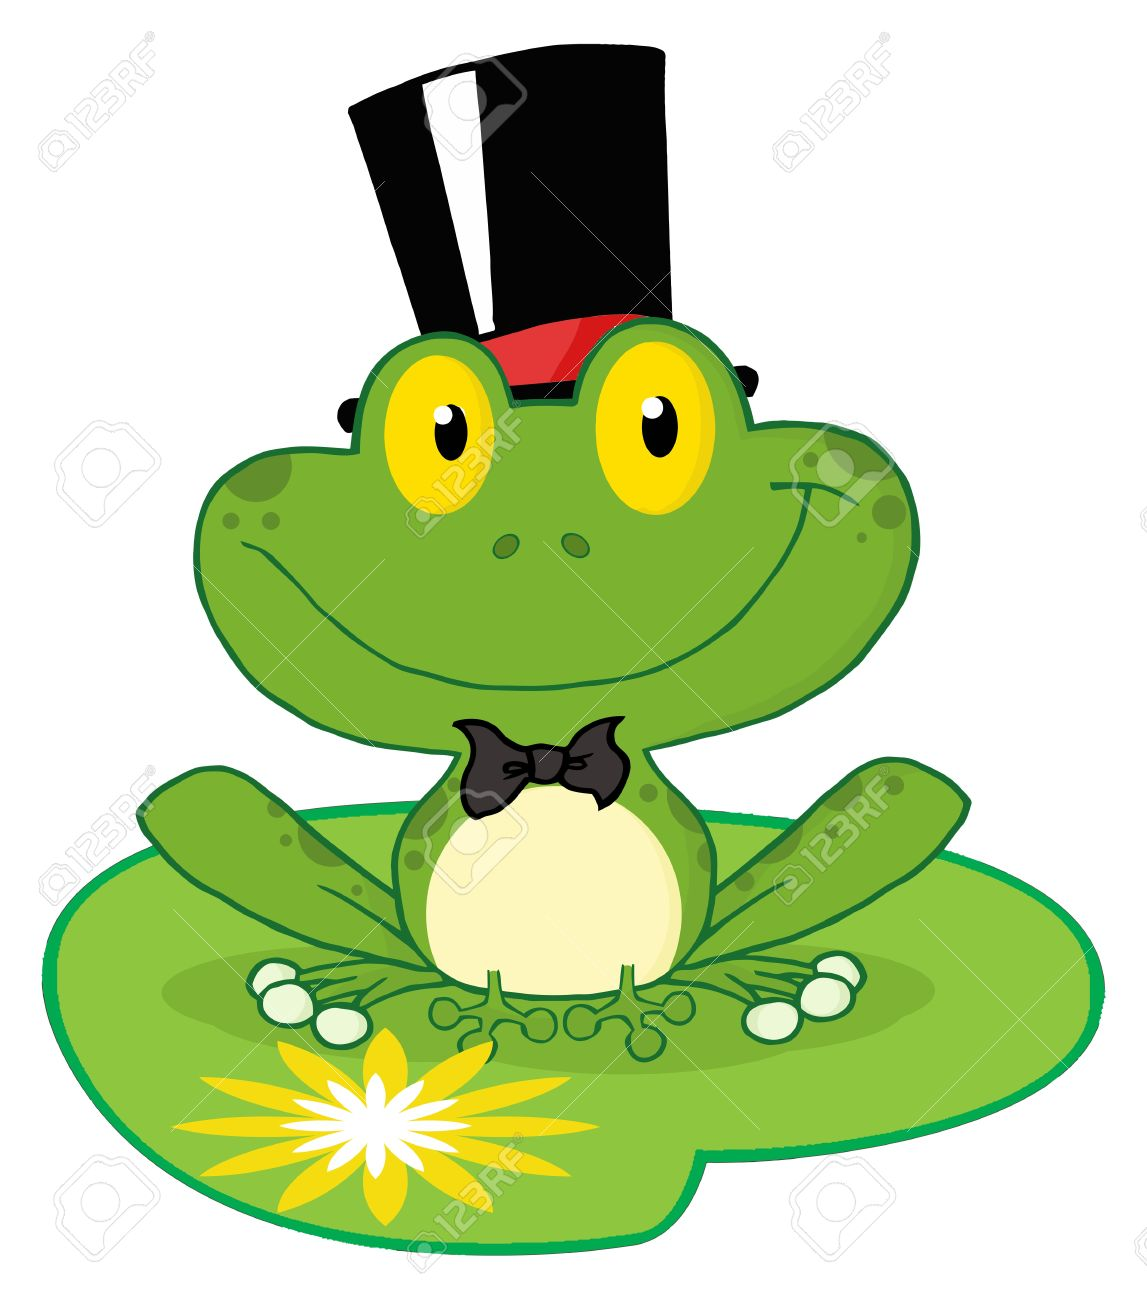 Toad clipart leap frog #5